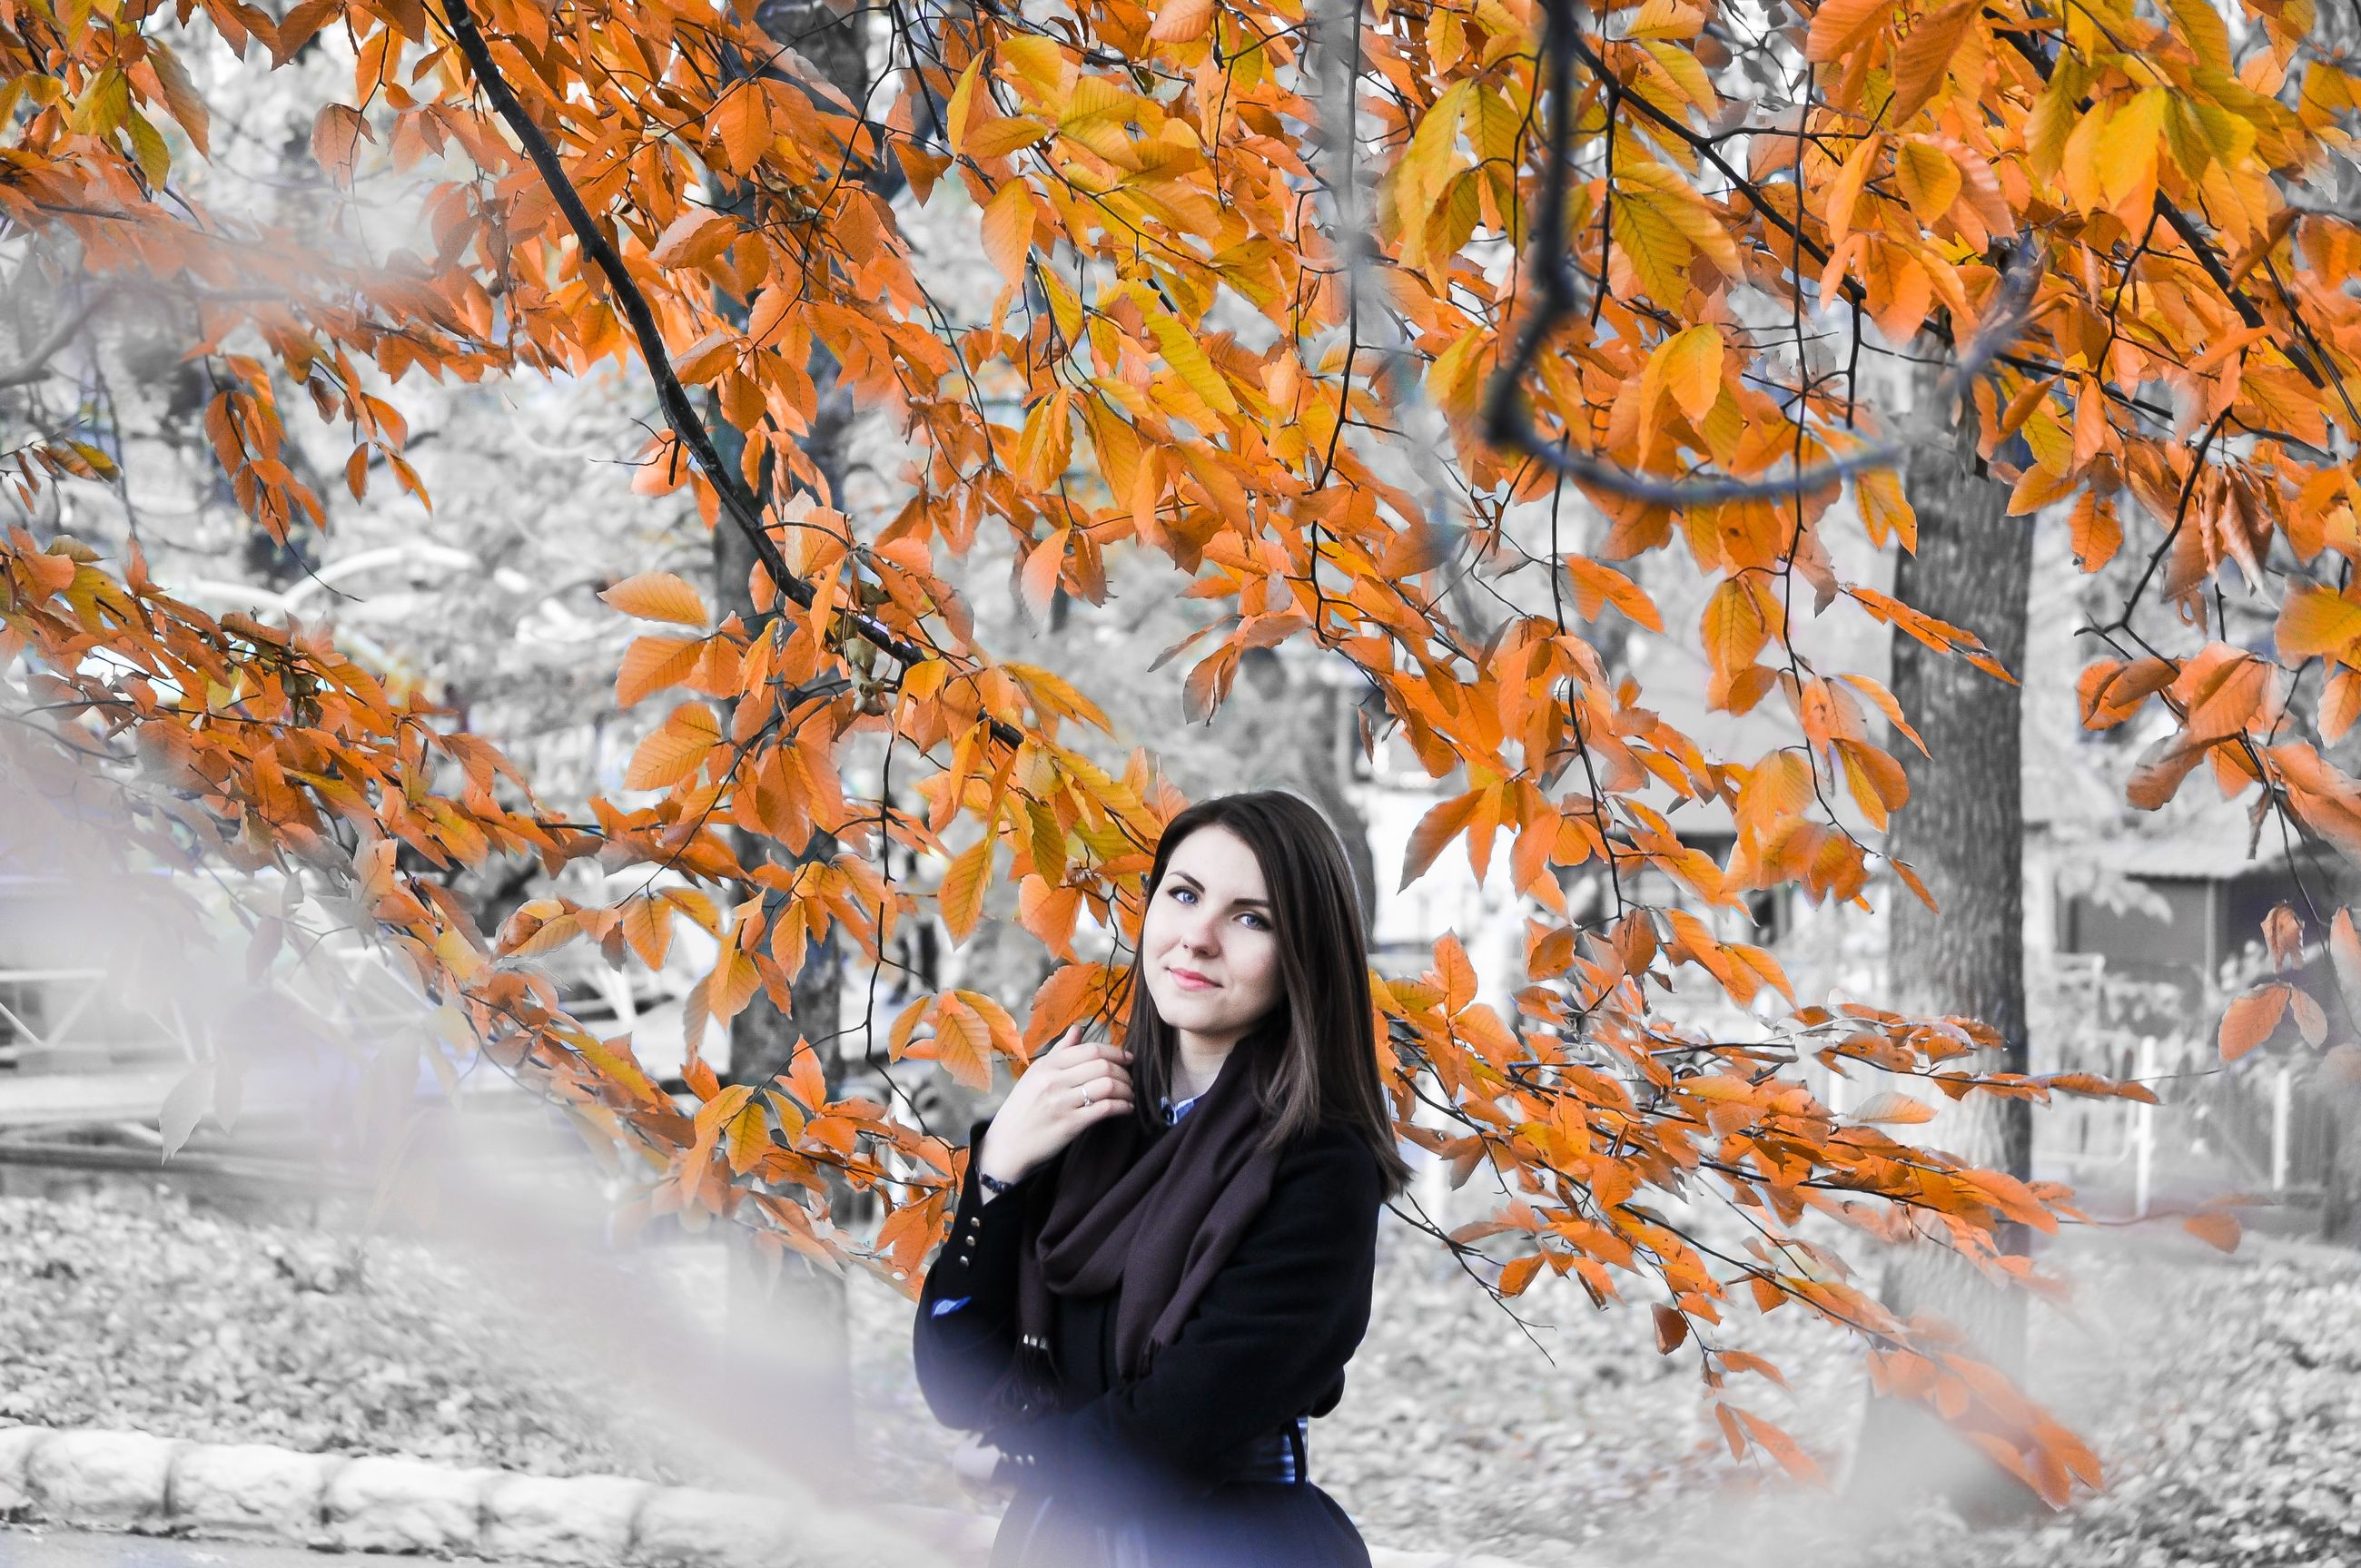 lifestyles, young adult, person, leisure activity, autumn, casual clothing, tree, looking at camera, standing, young women, portrait, front view, leaf, change, season, smiling, waist up, day